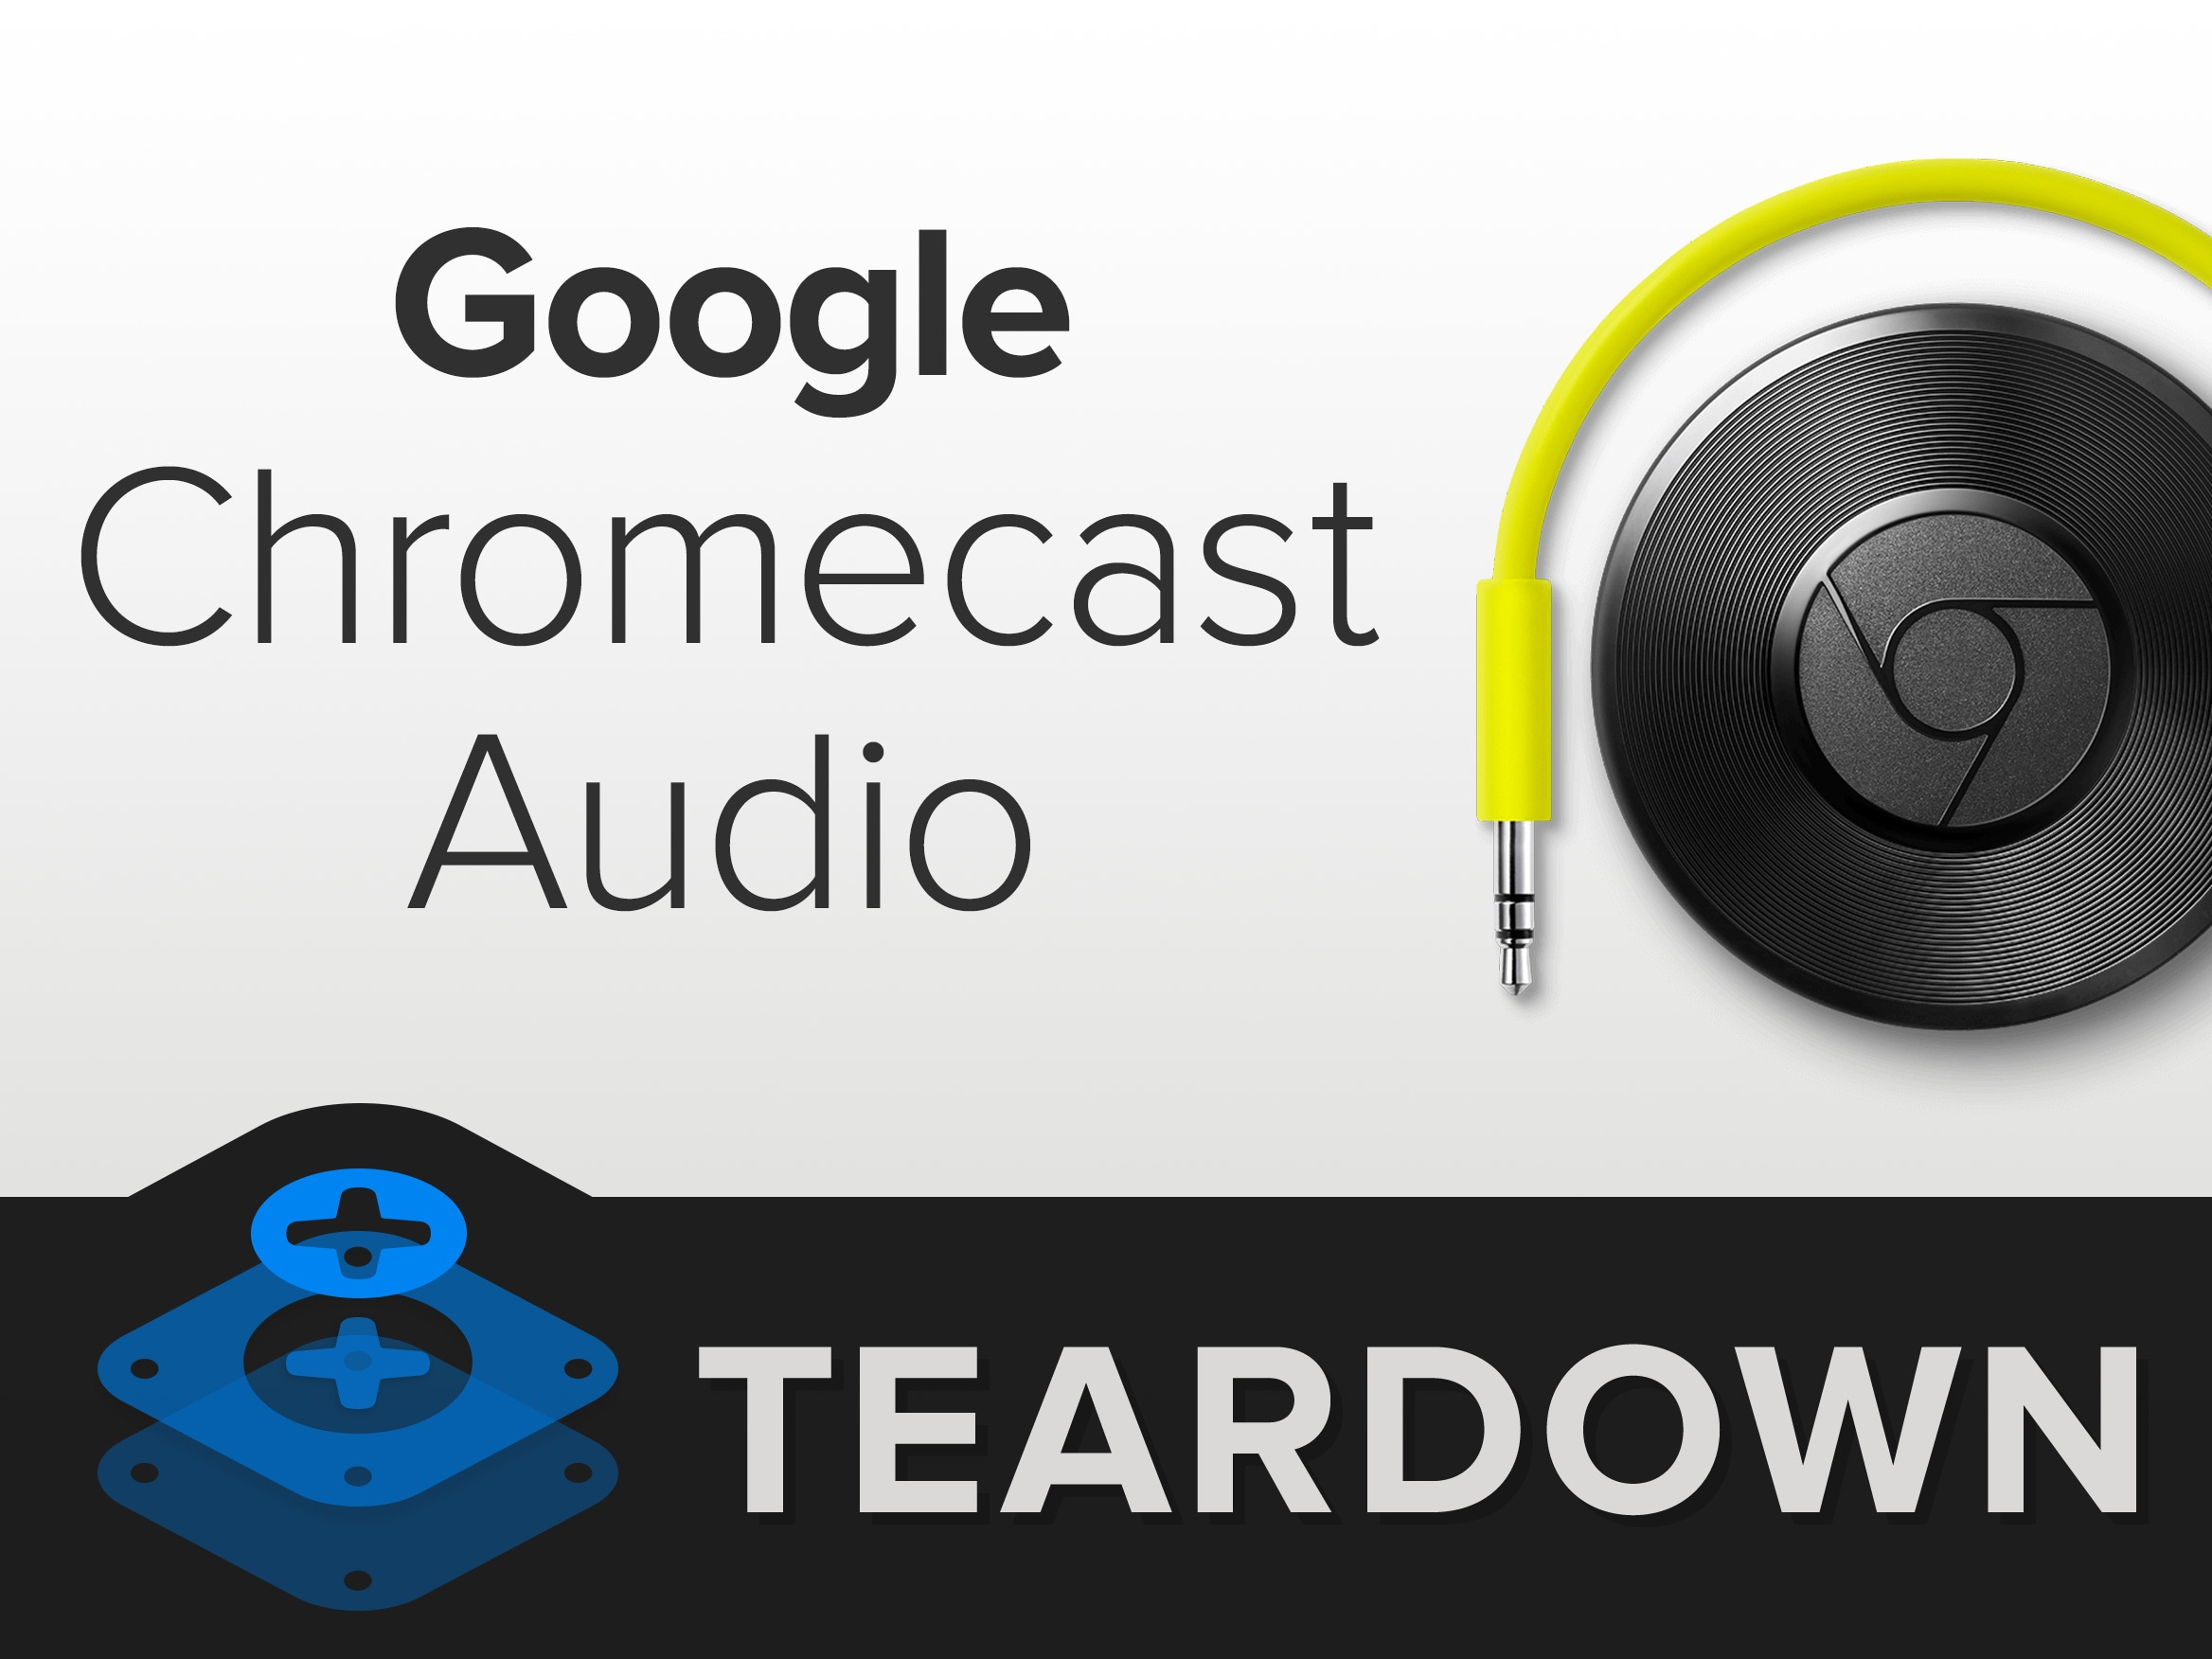 chromecast audio teardown